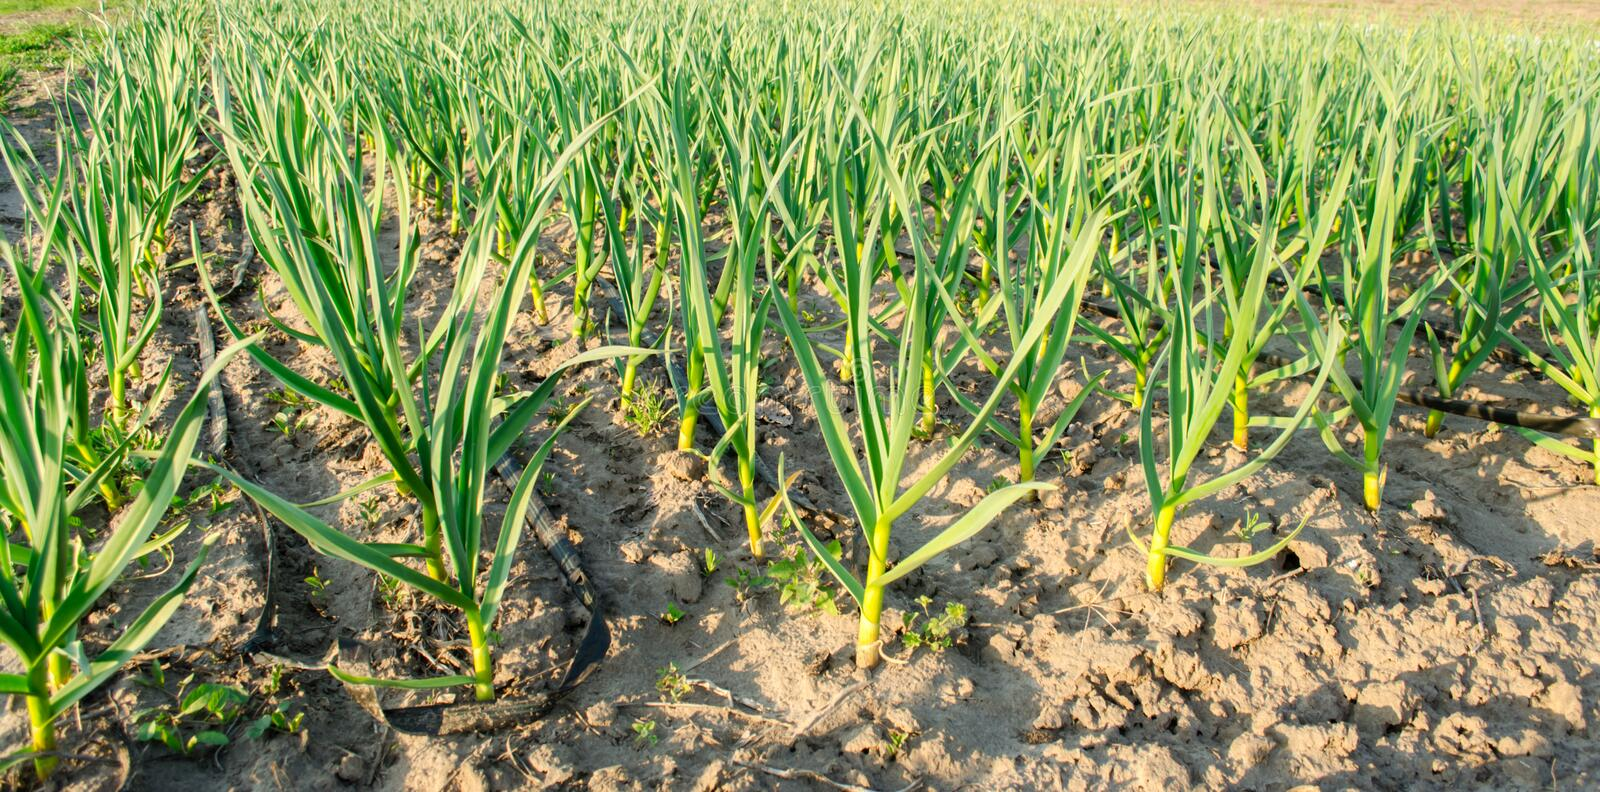 Rows of young leek grow in the field in a sunny day. Farm. Growing organic vegetables. Agriculture. Onion. Selective focus.  stock photos